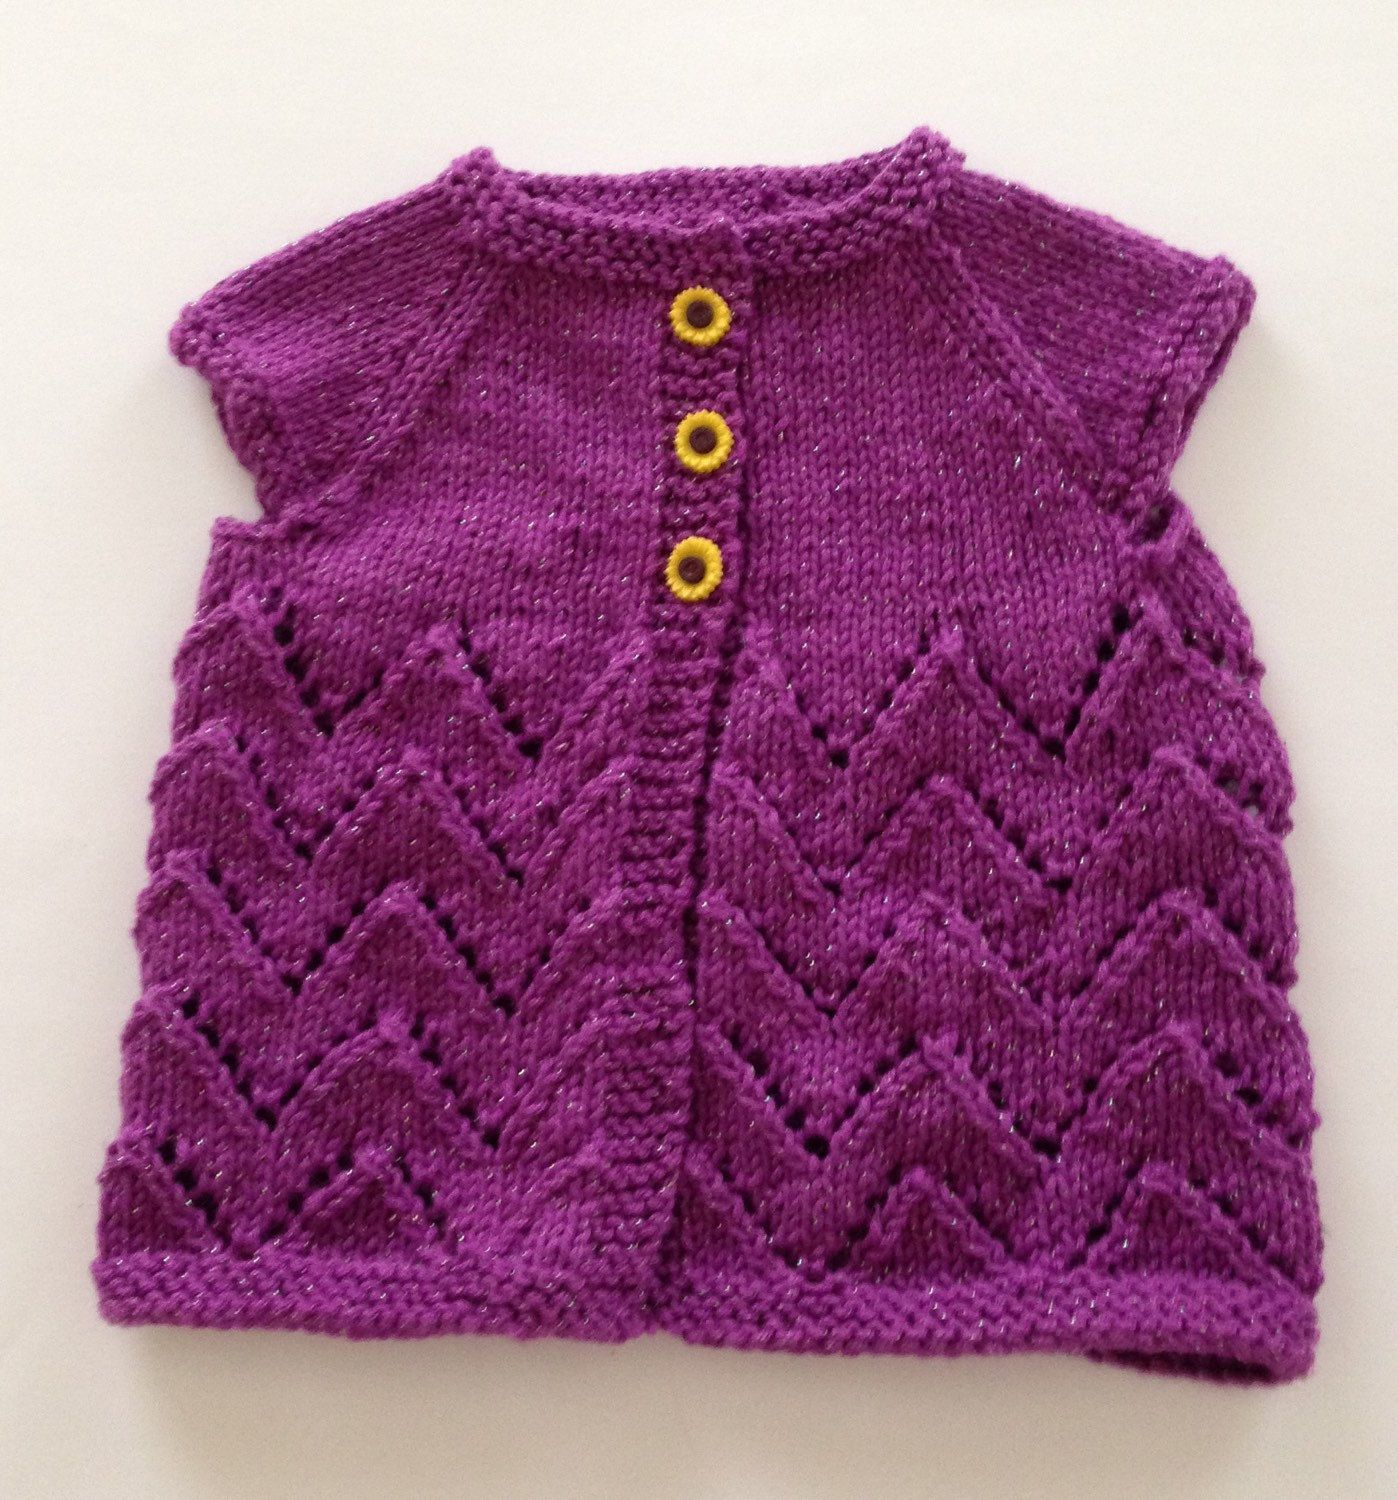 Glitter Purple Chevron Lace Knit Cardigan with Sunflower Buttons ...